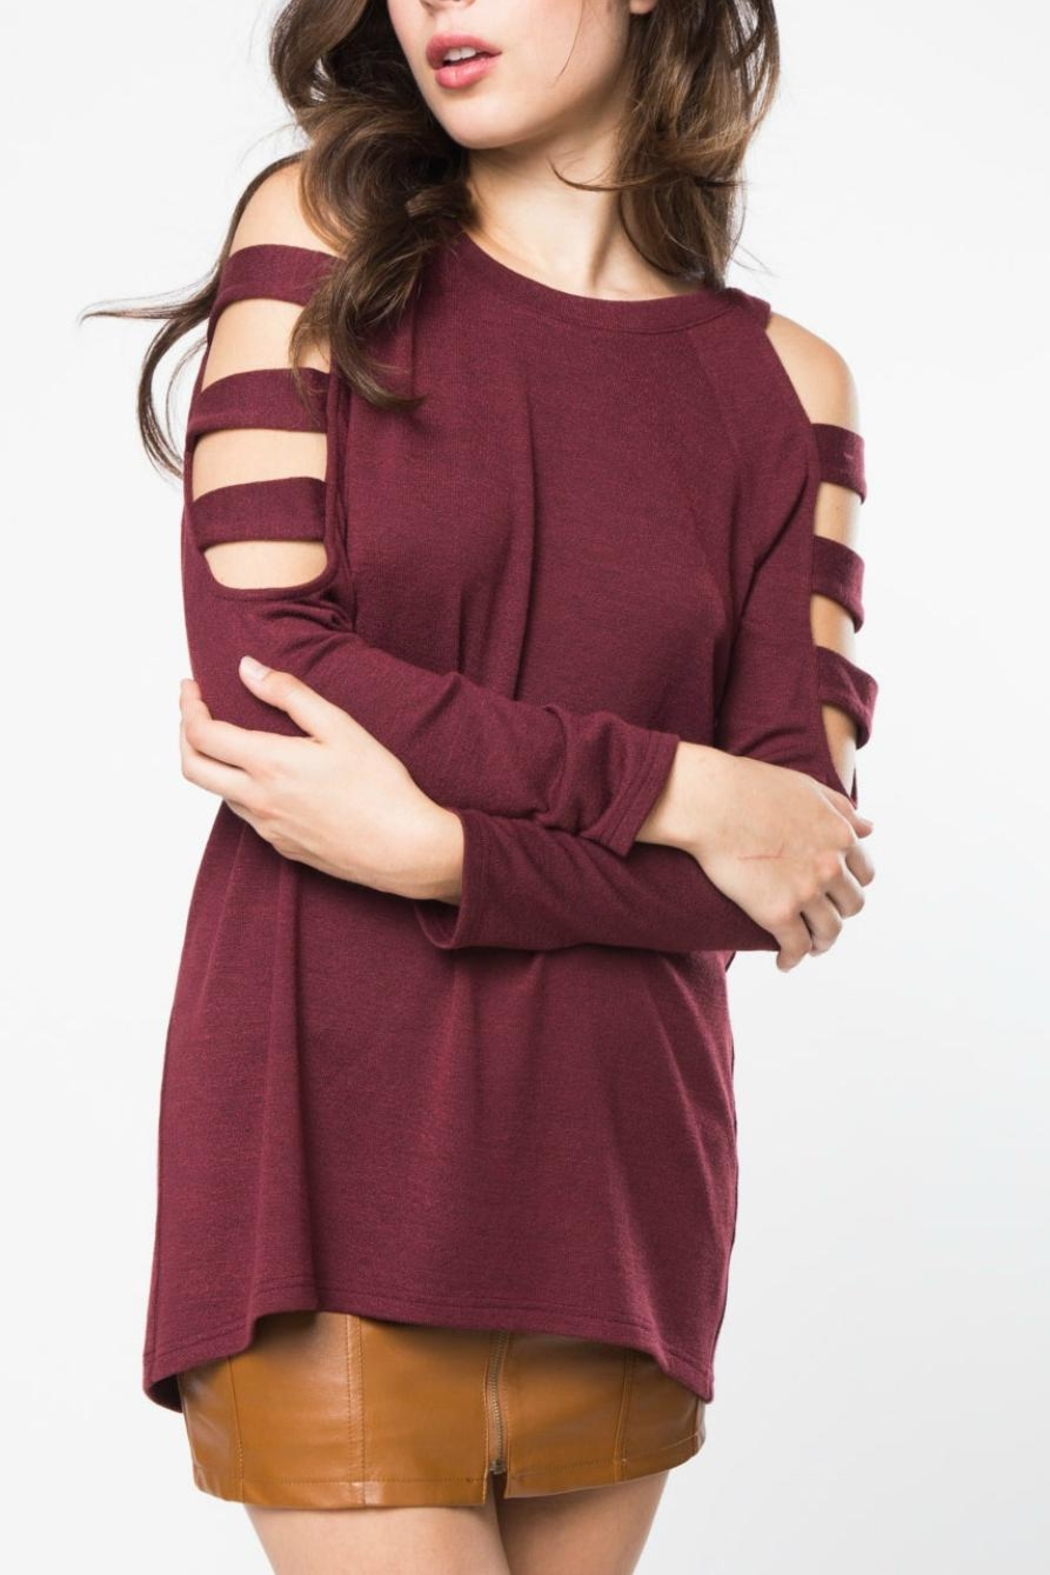 LoveRiche Wine Knit Tunic - Main Image